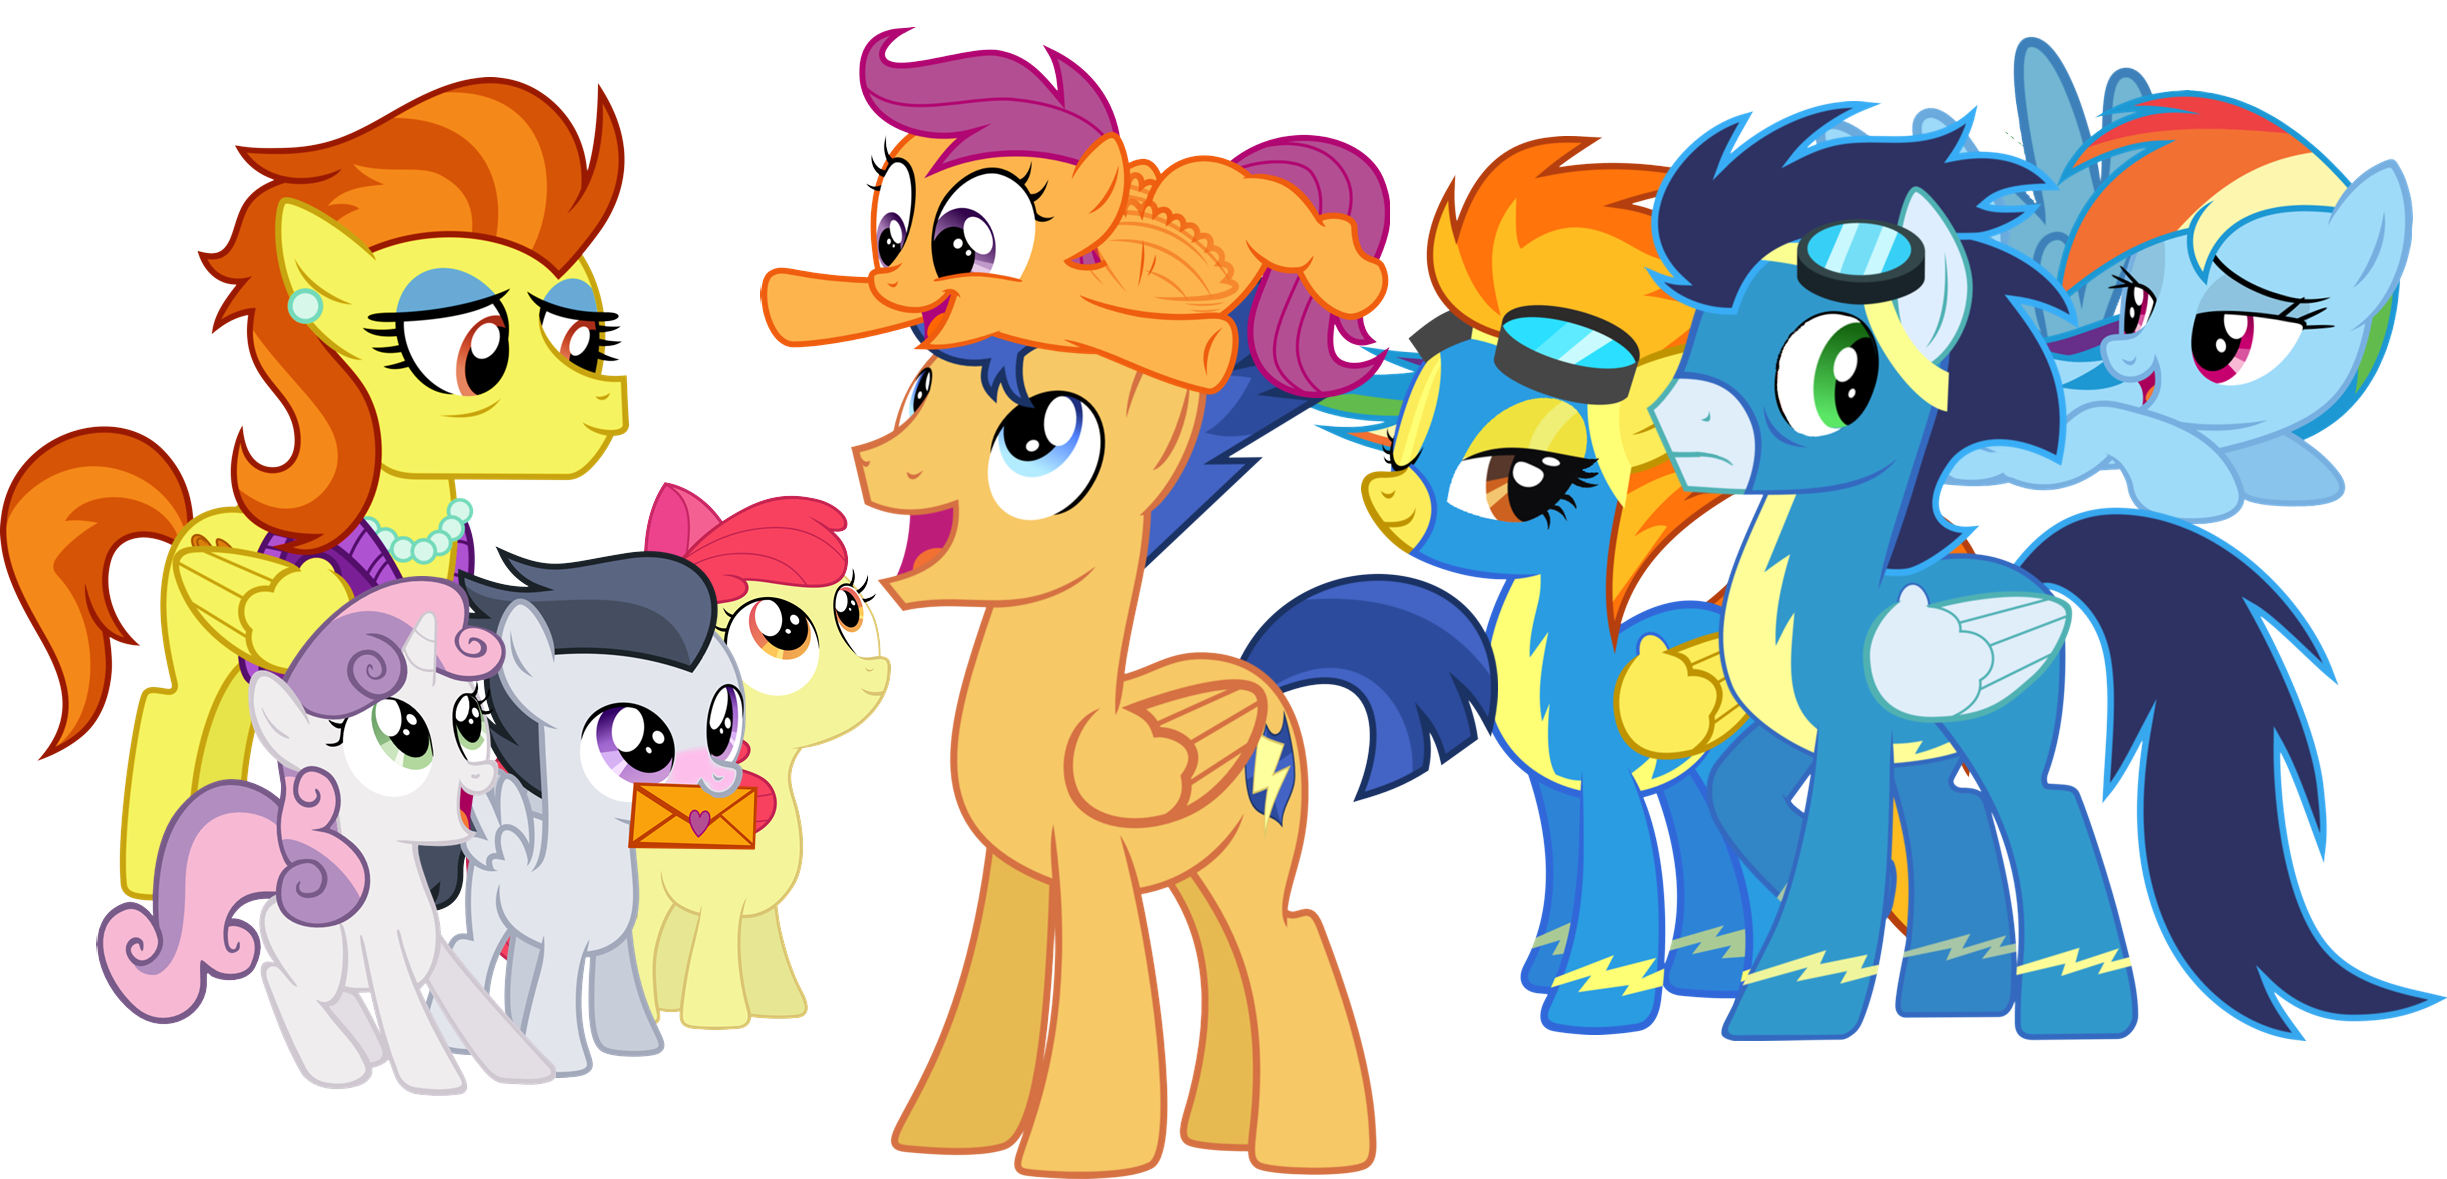 Tales From The Head Canon Scootaloo S Real Family By Bronybyexception On Deviantart Scootaloo was released 9 times in the classic core 7 pose. tales from the head canon scootaloo s